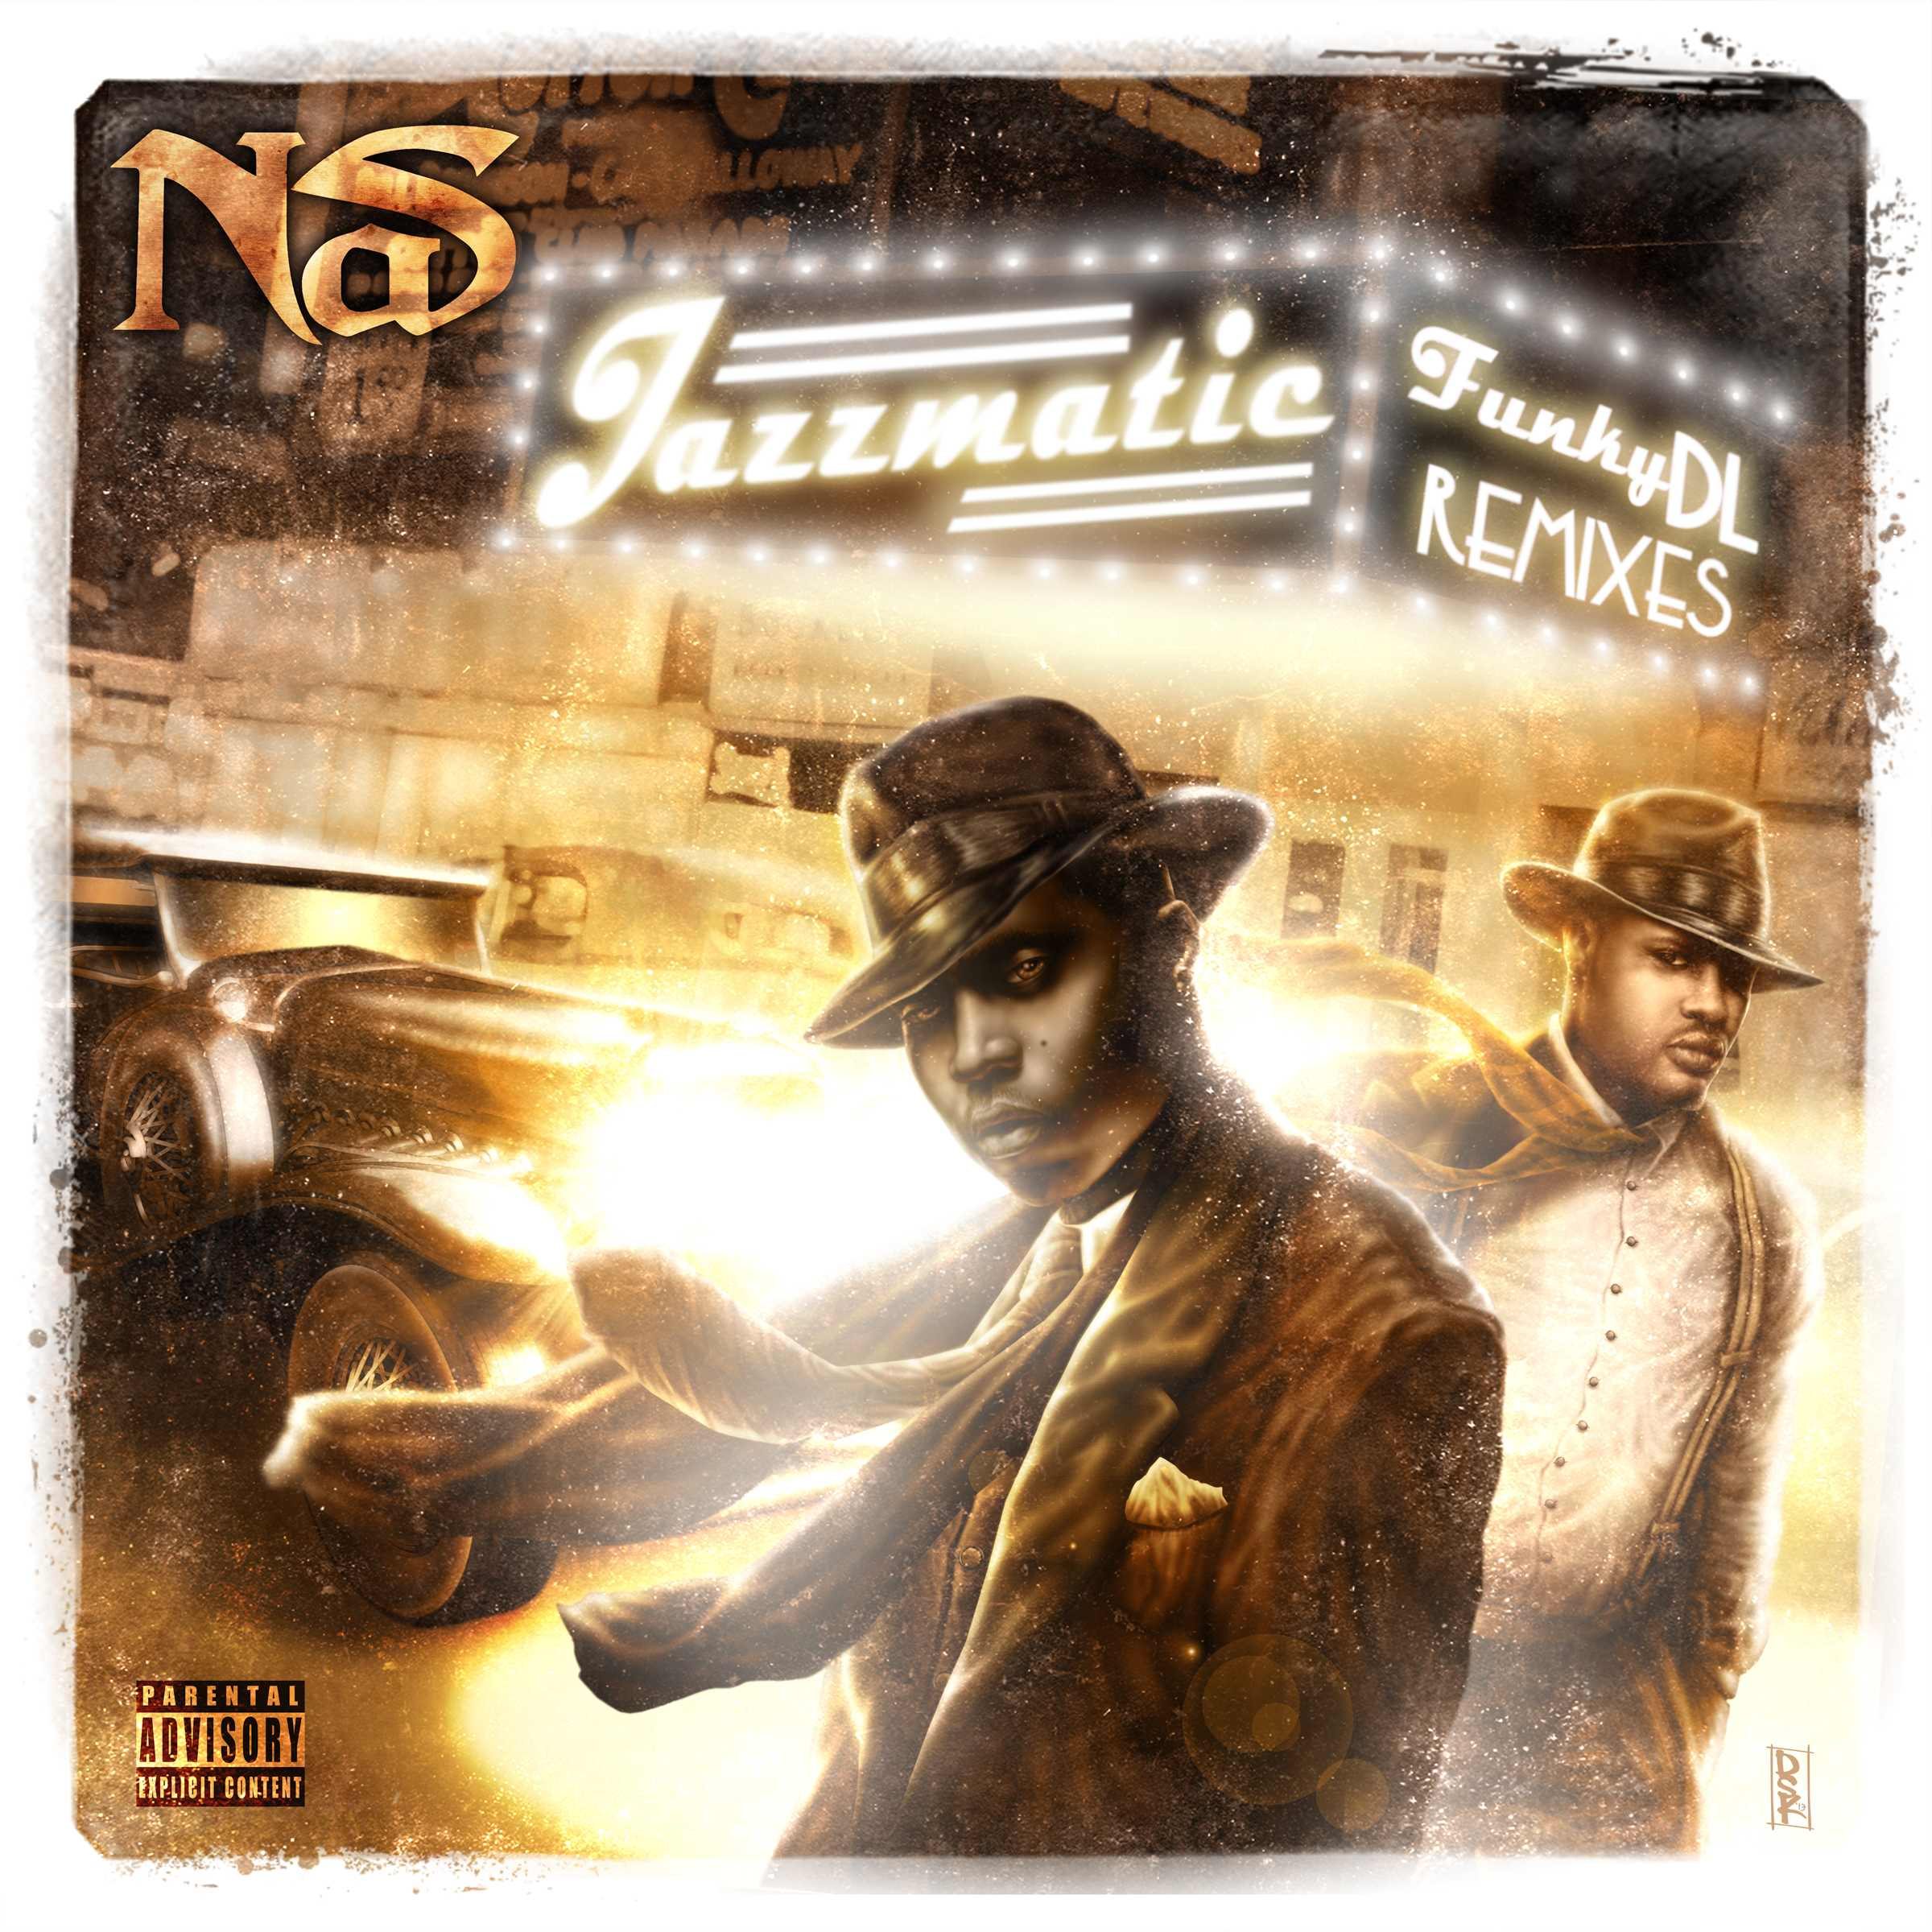 Funky DL - Jazzmatic[Nas Remixes]